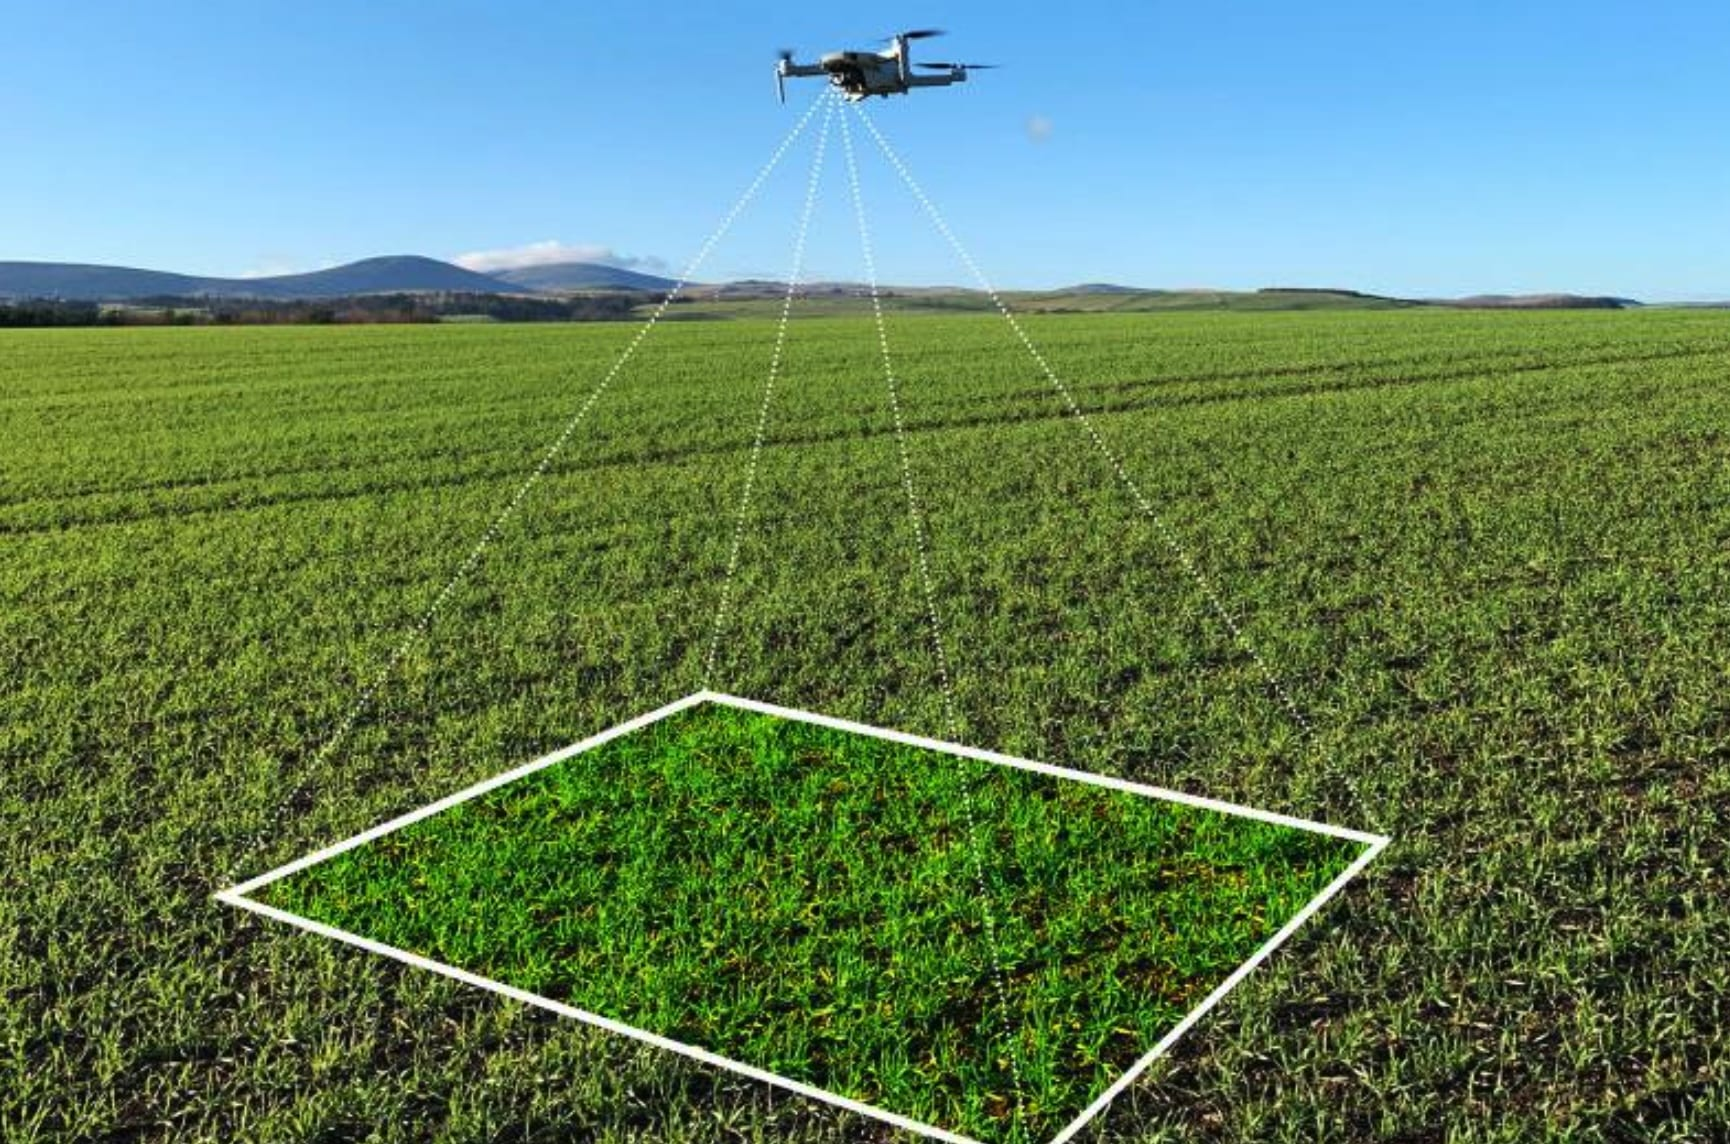 Artificial intelligence (AI) and drones are 10 times faster than traditional crop walking methods used by farmers to monitor the growth and health of their plants.